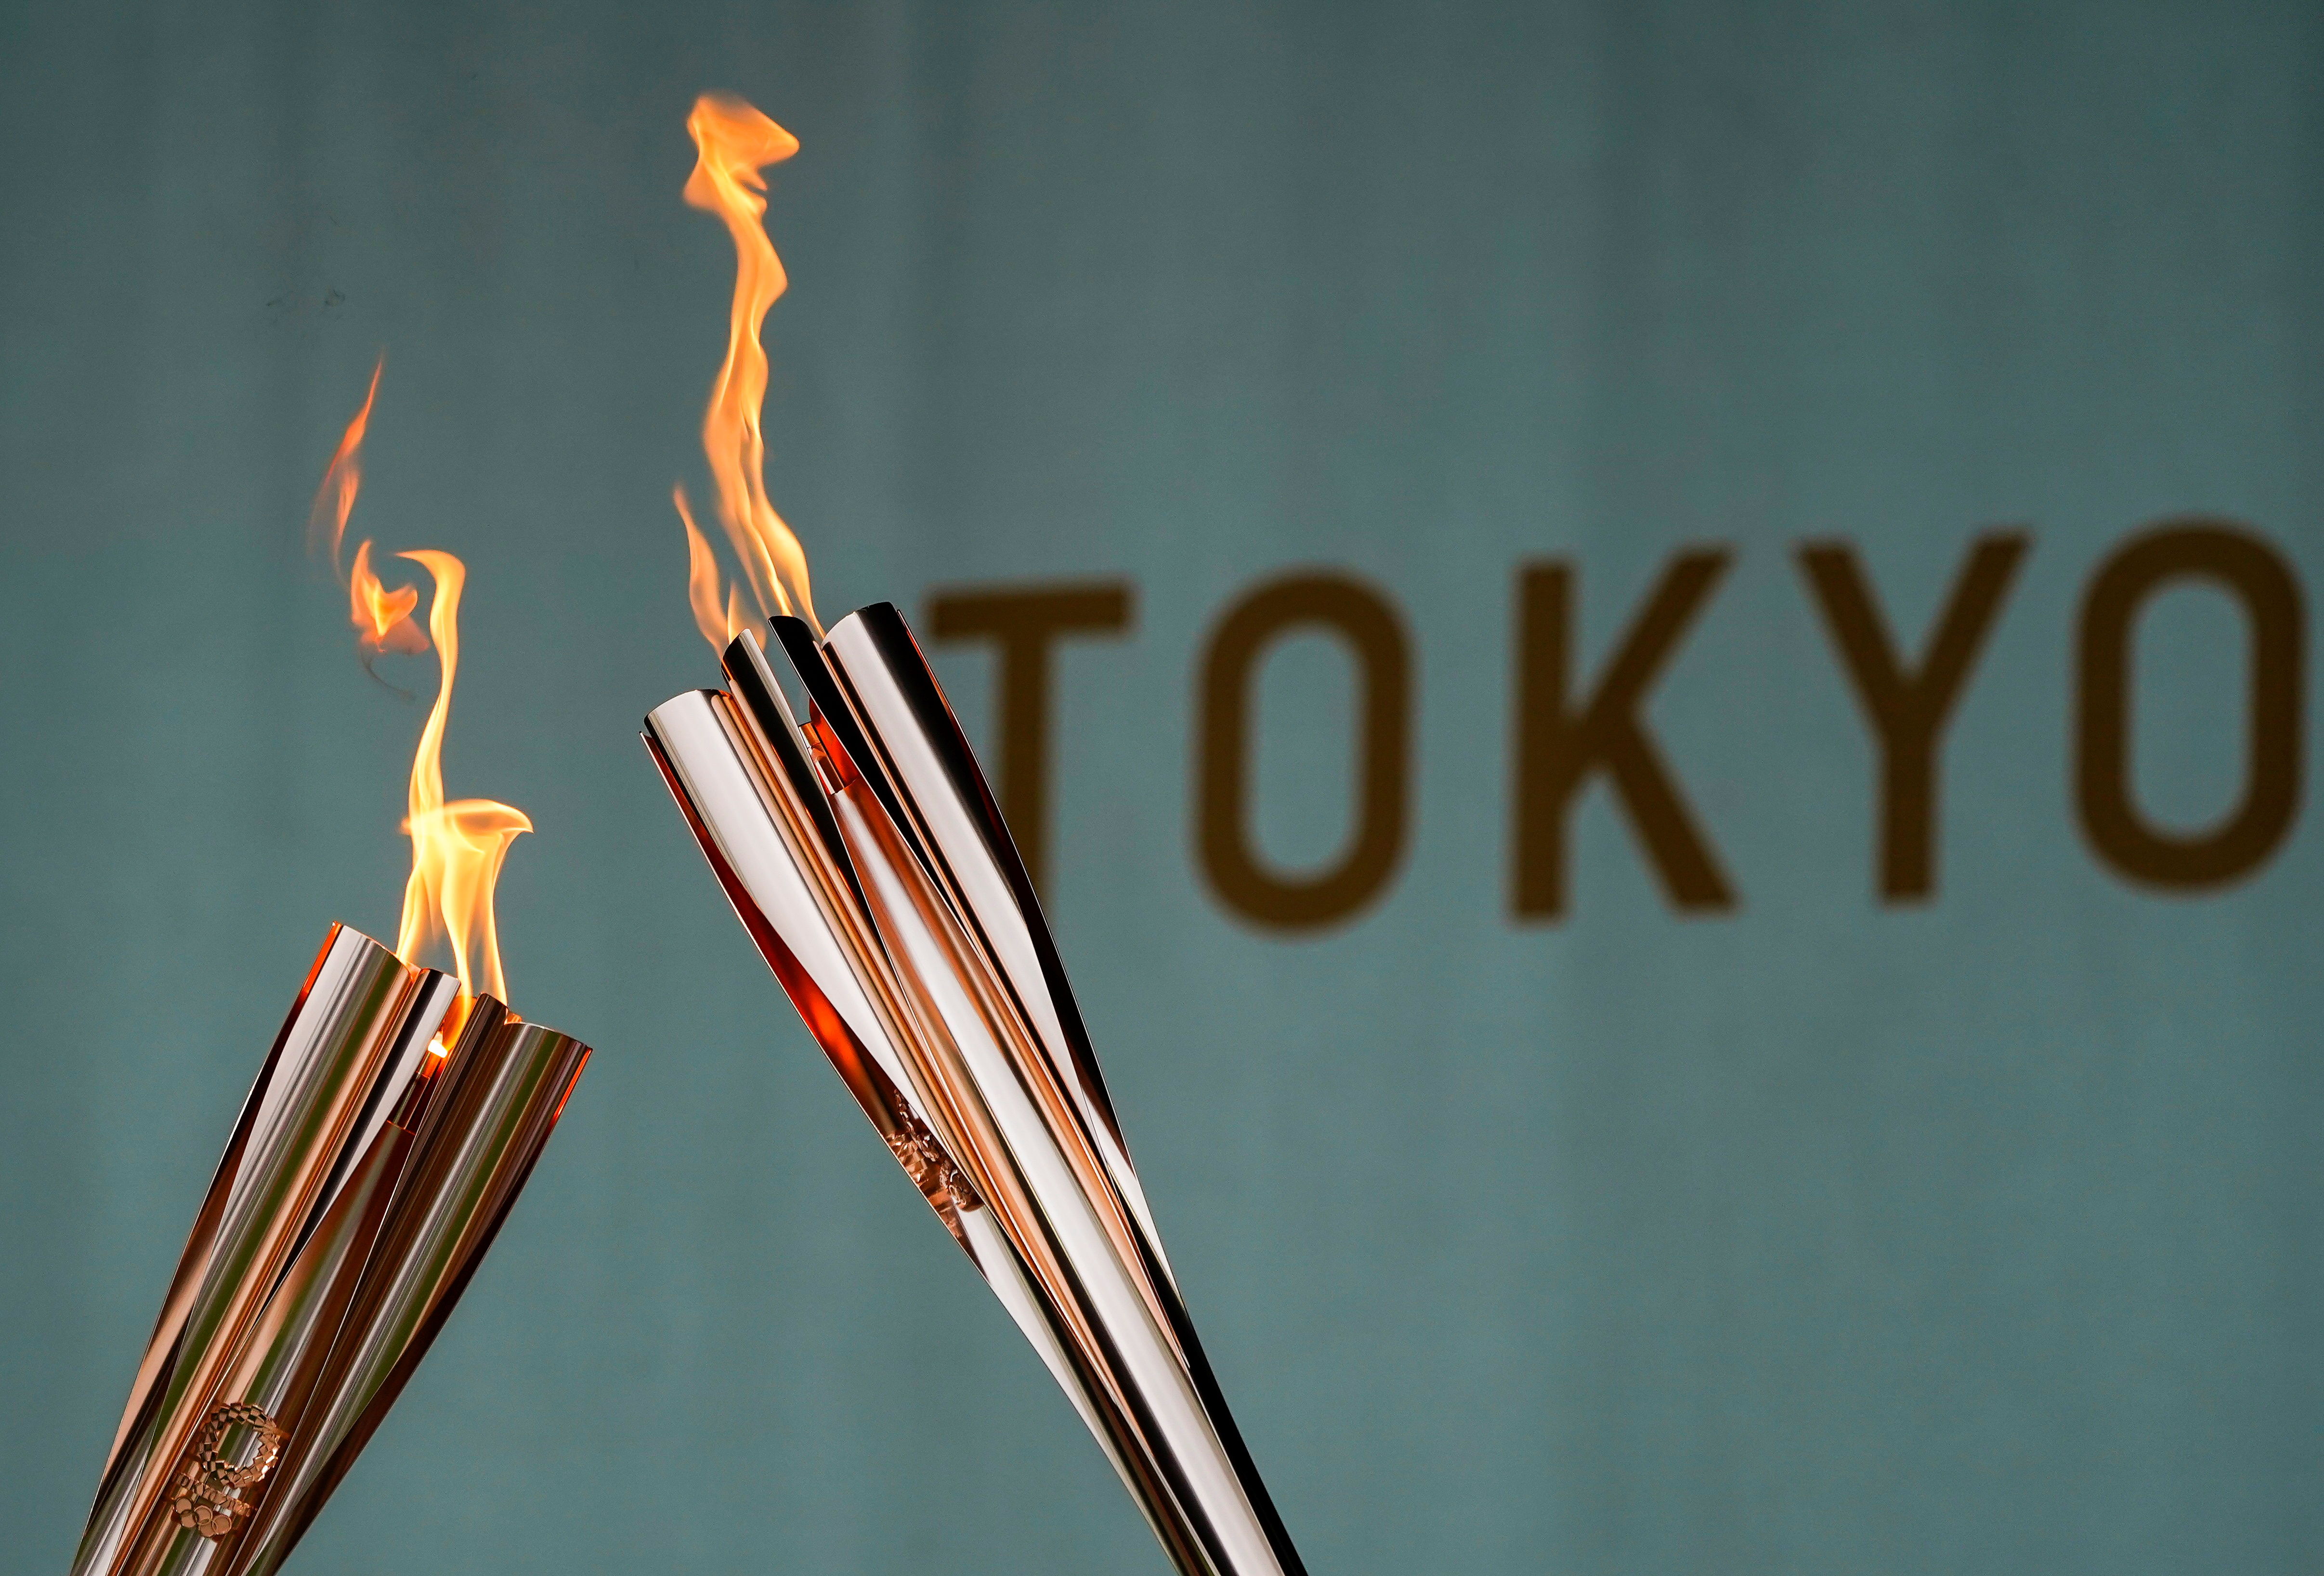 Torches are pictured during a lighting ceremony after the torch relay on a public road was cancelled due to the coronavirus disease (COVID-19) pandemic, at the Tokyo 2020 Olympic torch relay celebration in Tokyo, Japan, July 9, 2021. REUTERS/Naoki Ogura